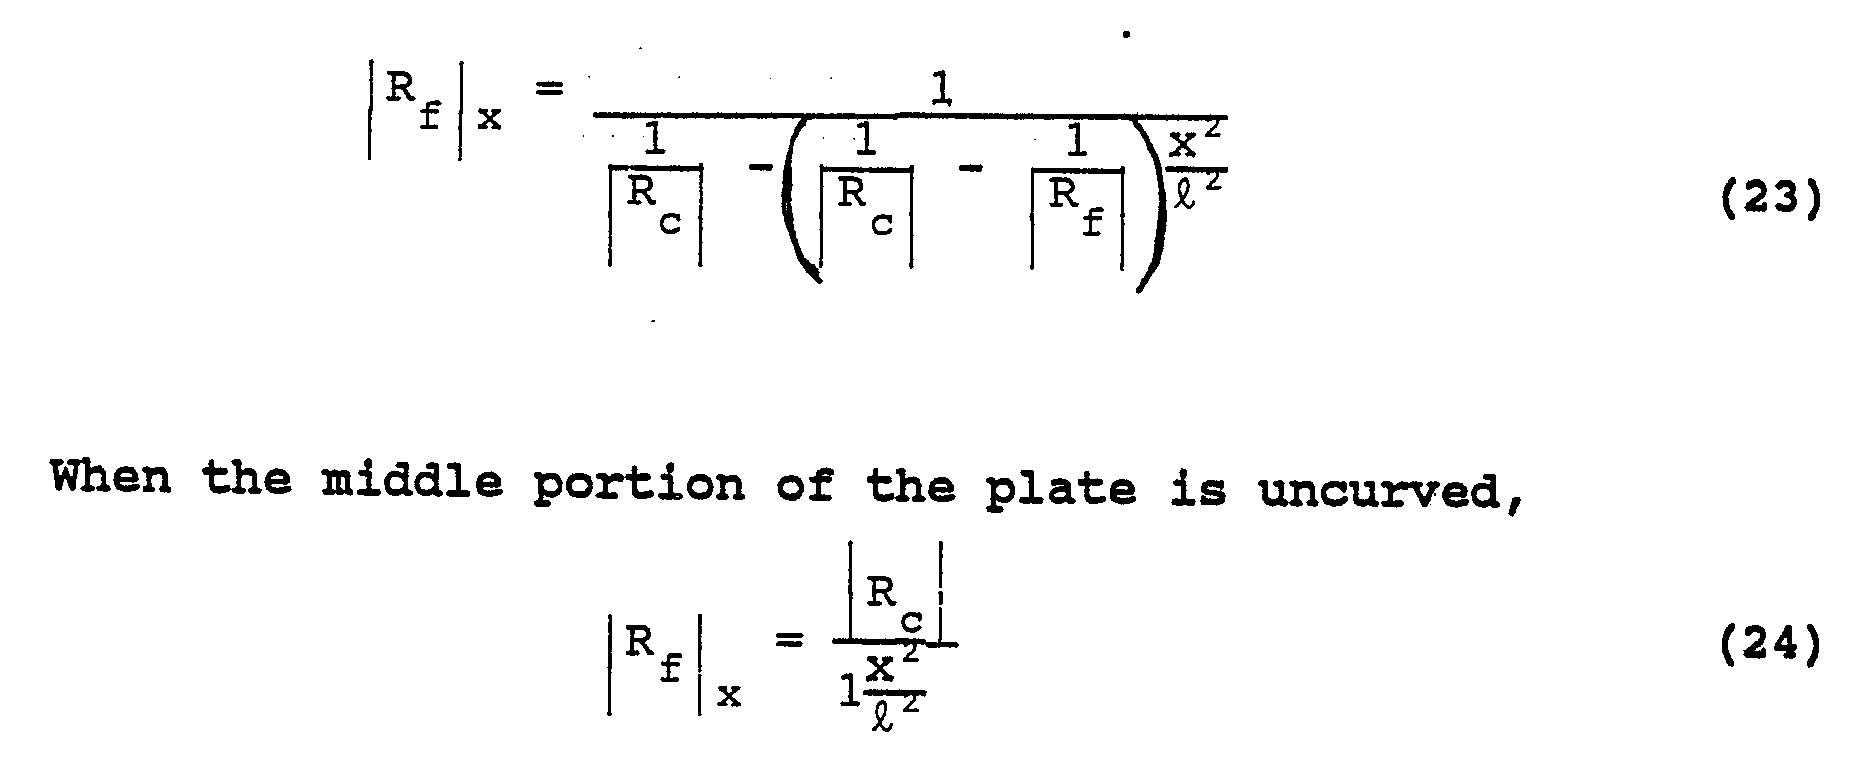 Ep0266445a1 Magnetic Cylinders With Image Plate Or Blanket For Offset Press Diagram Gravure Printing Figure Imgb0021